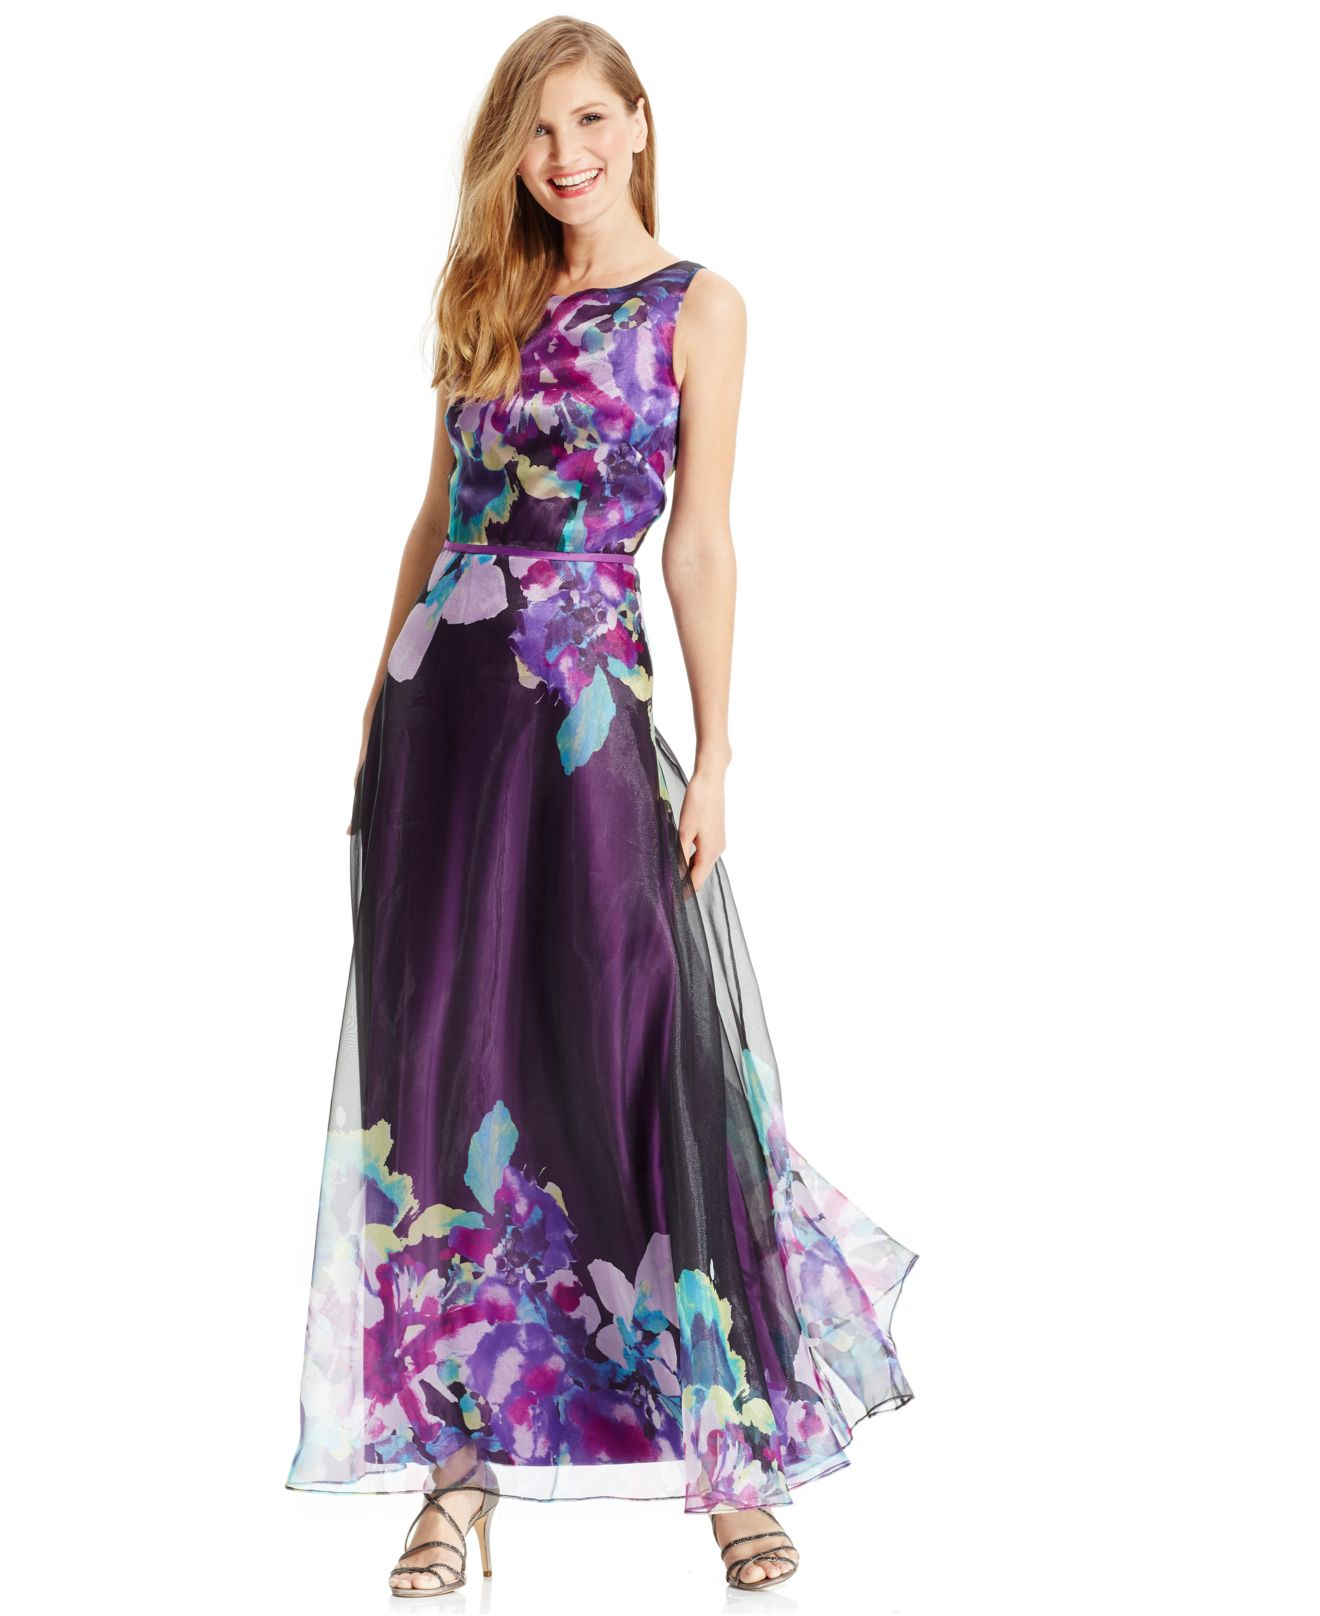 Lyst - Tahari Exploded Floral-print Sleeveless Gown in Purple